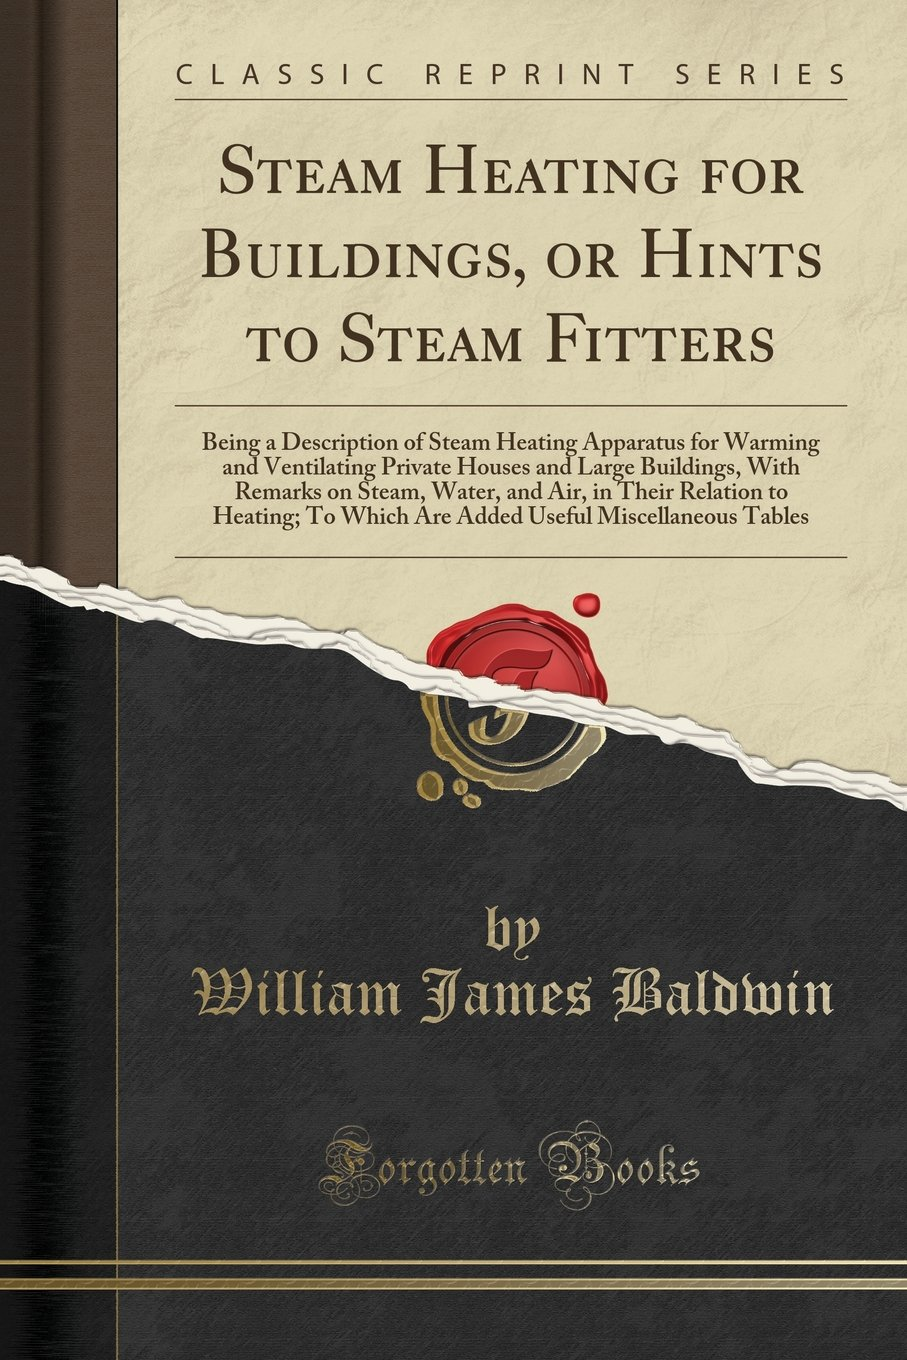 Steam Heating for Buildings, or Hints to Steam Fitters: Being a Description of Steam Heating Apparatus for Warming and Ventilating Private Houses and Their Relation to Heating; To Which Are Added